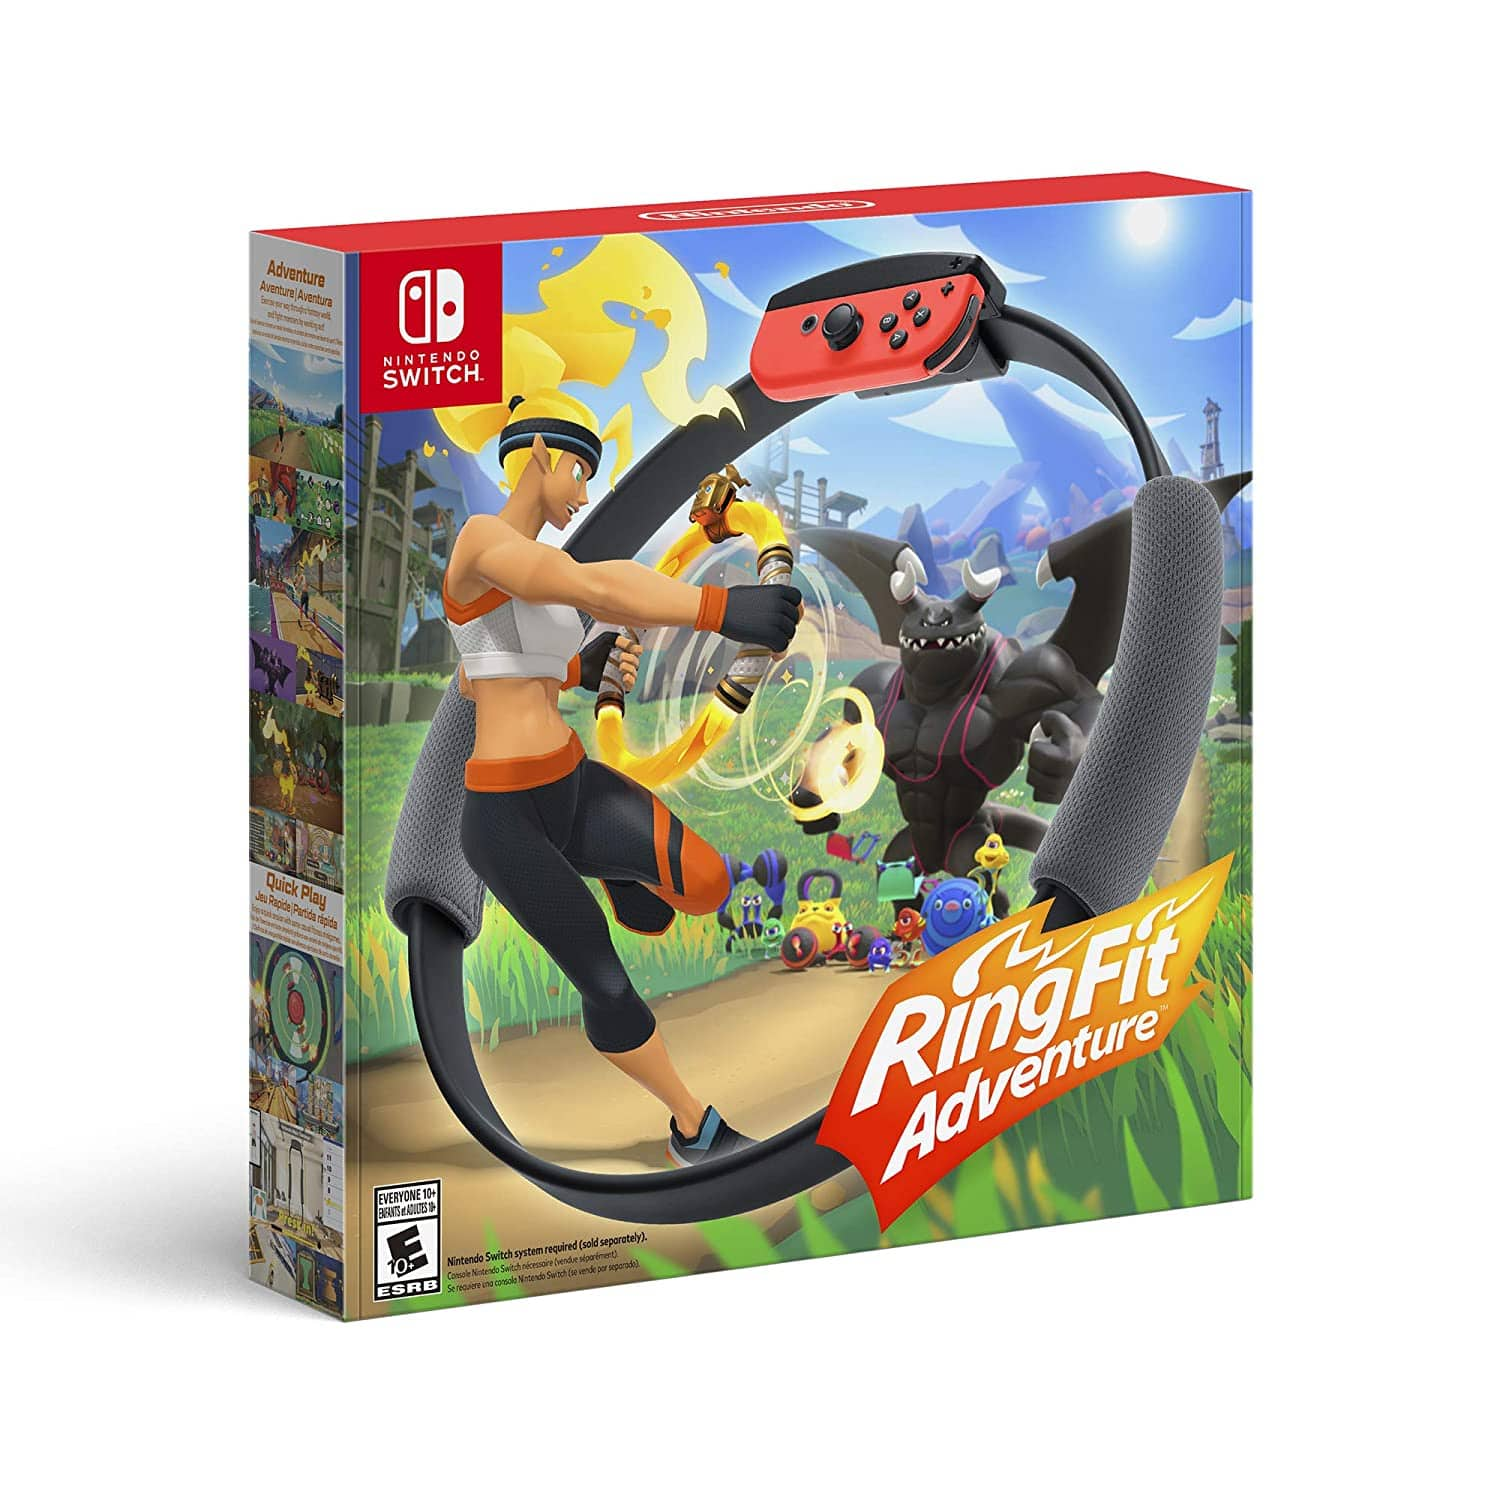 Ring Fit Nintendo Switch In Stock - Amazon